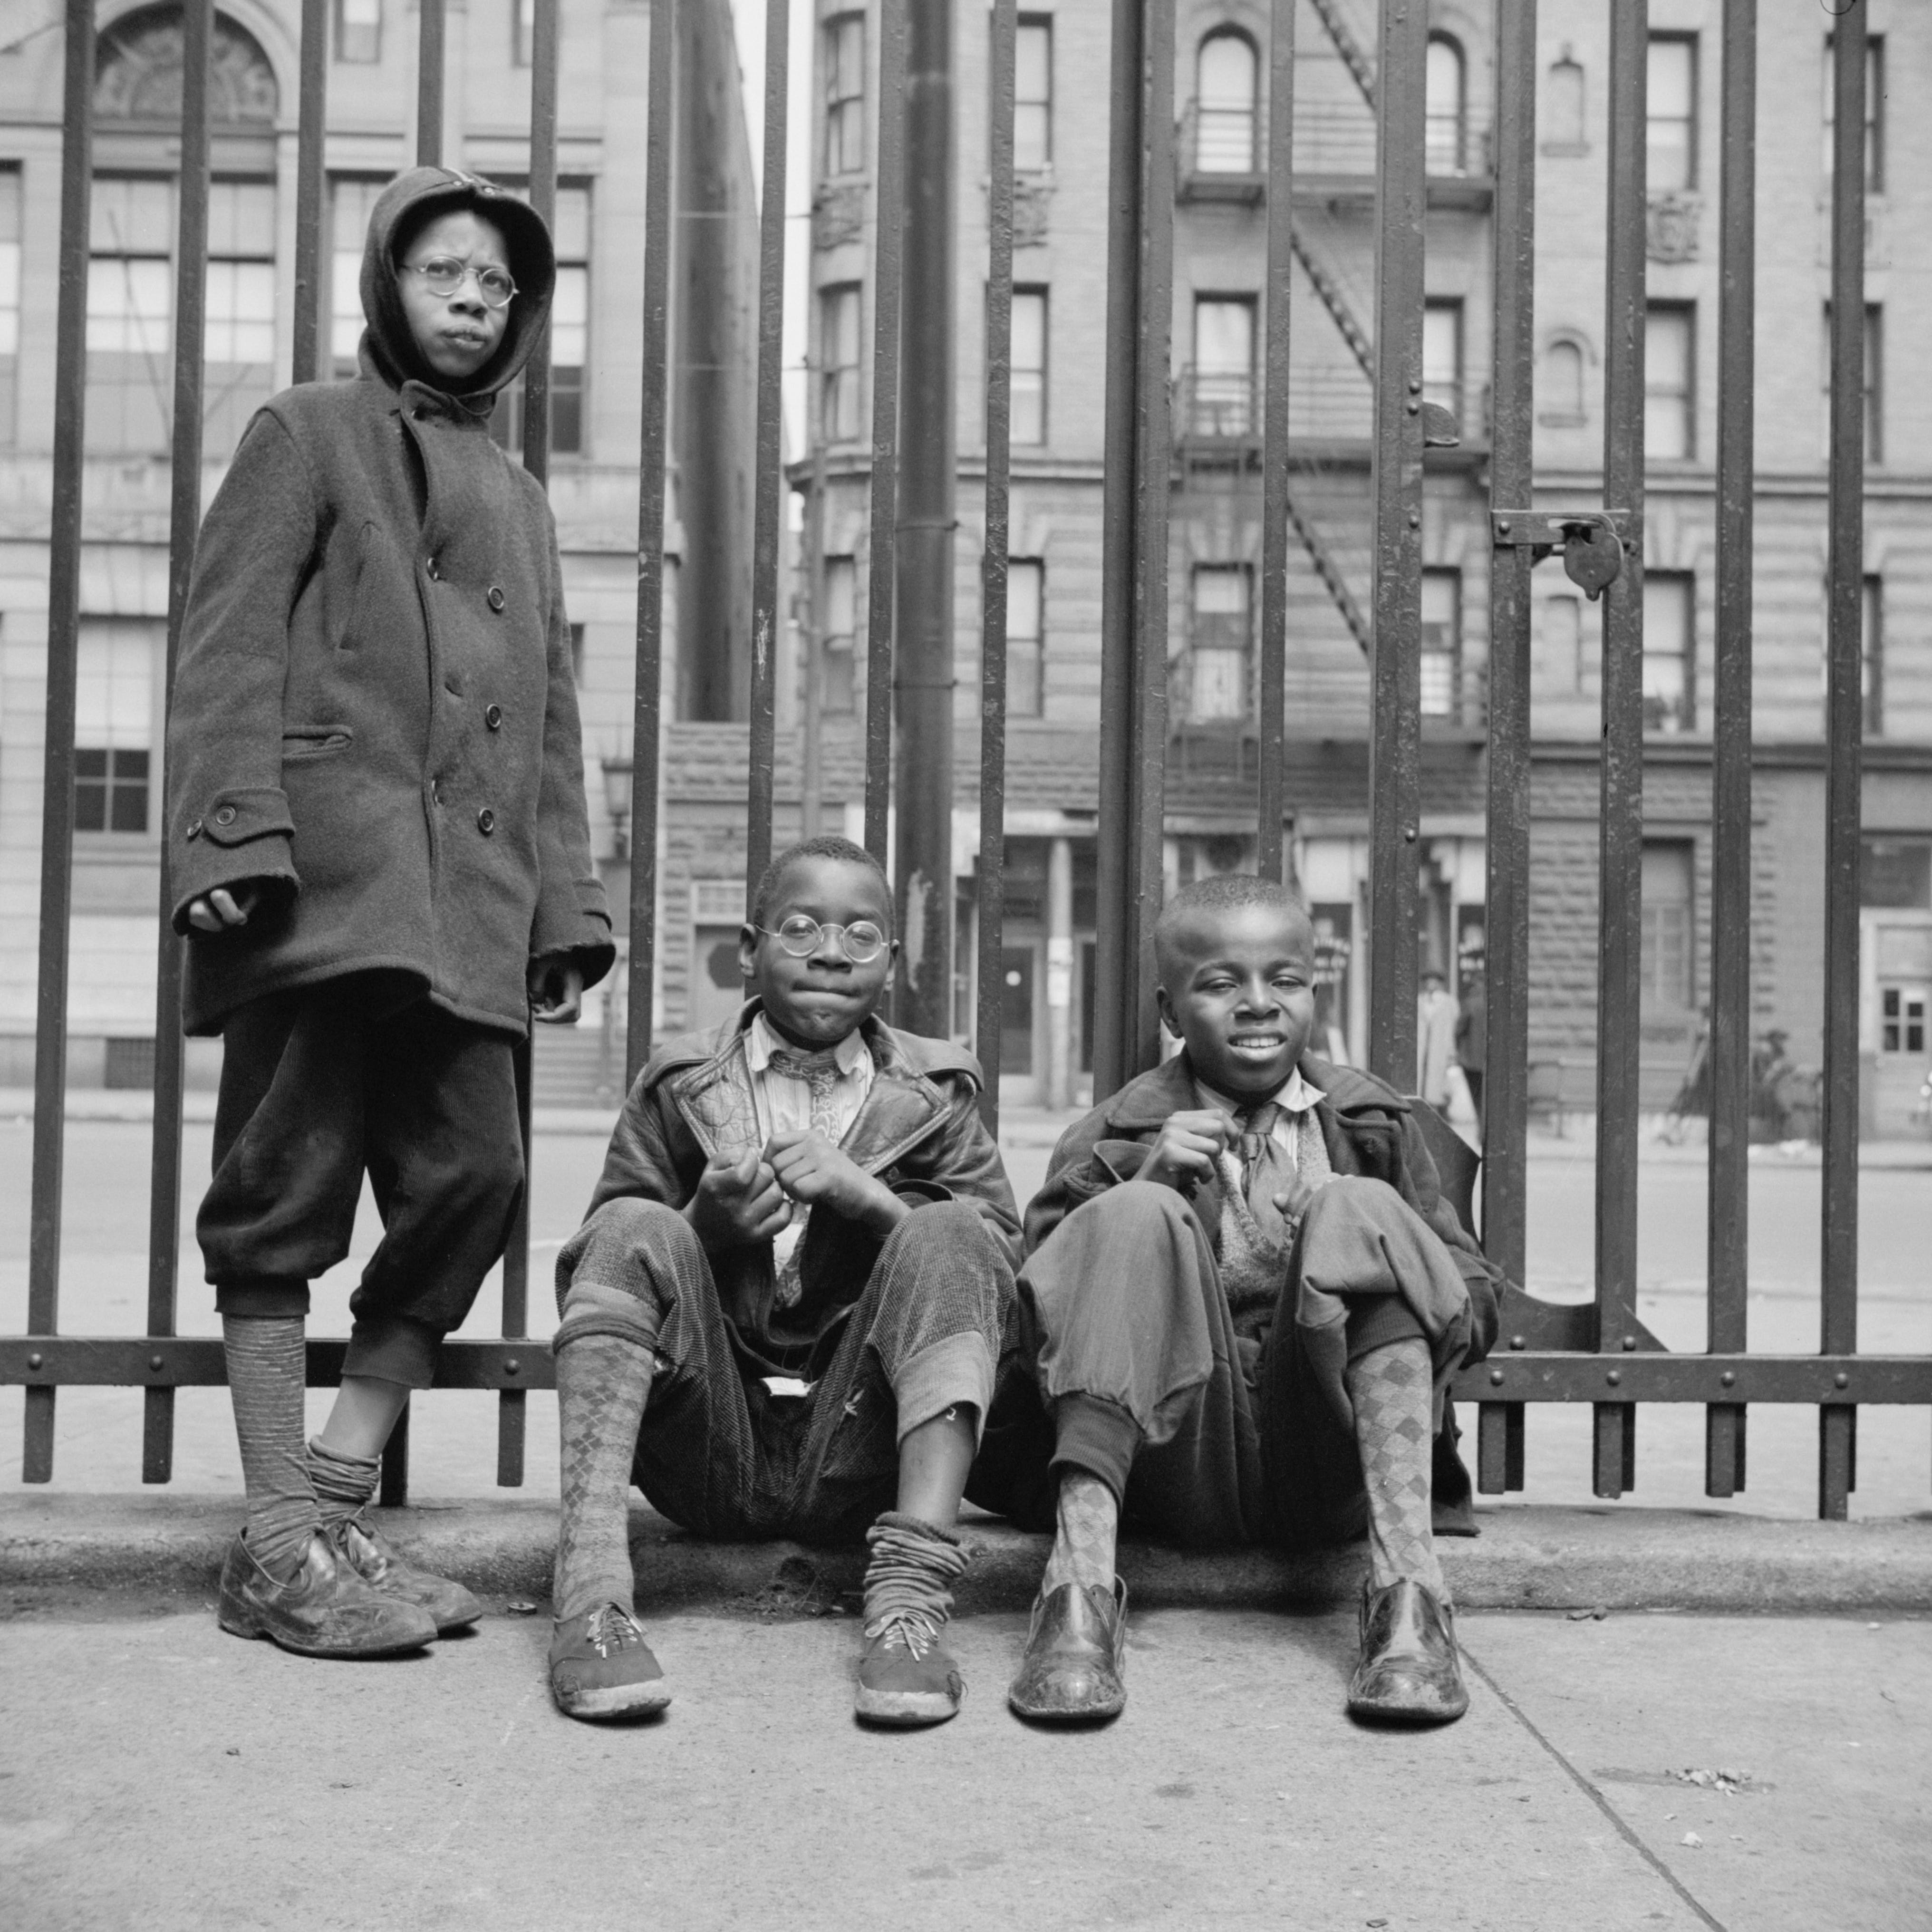 Three boys who live in Harlem, 1943.